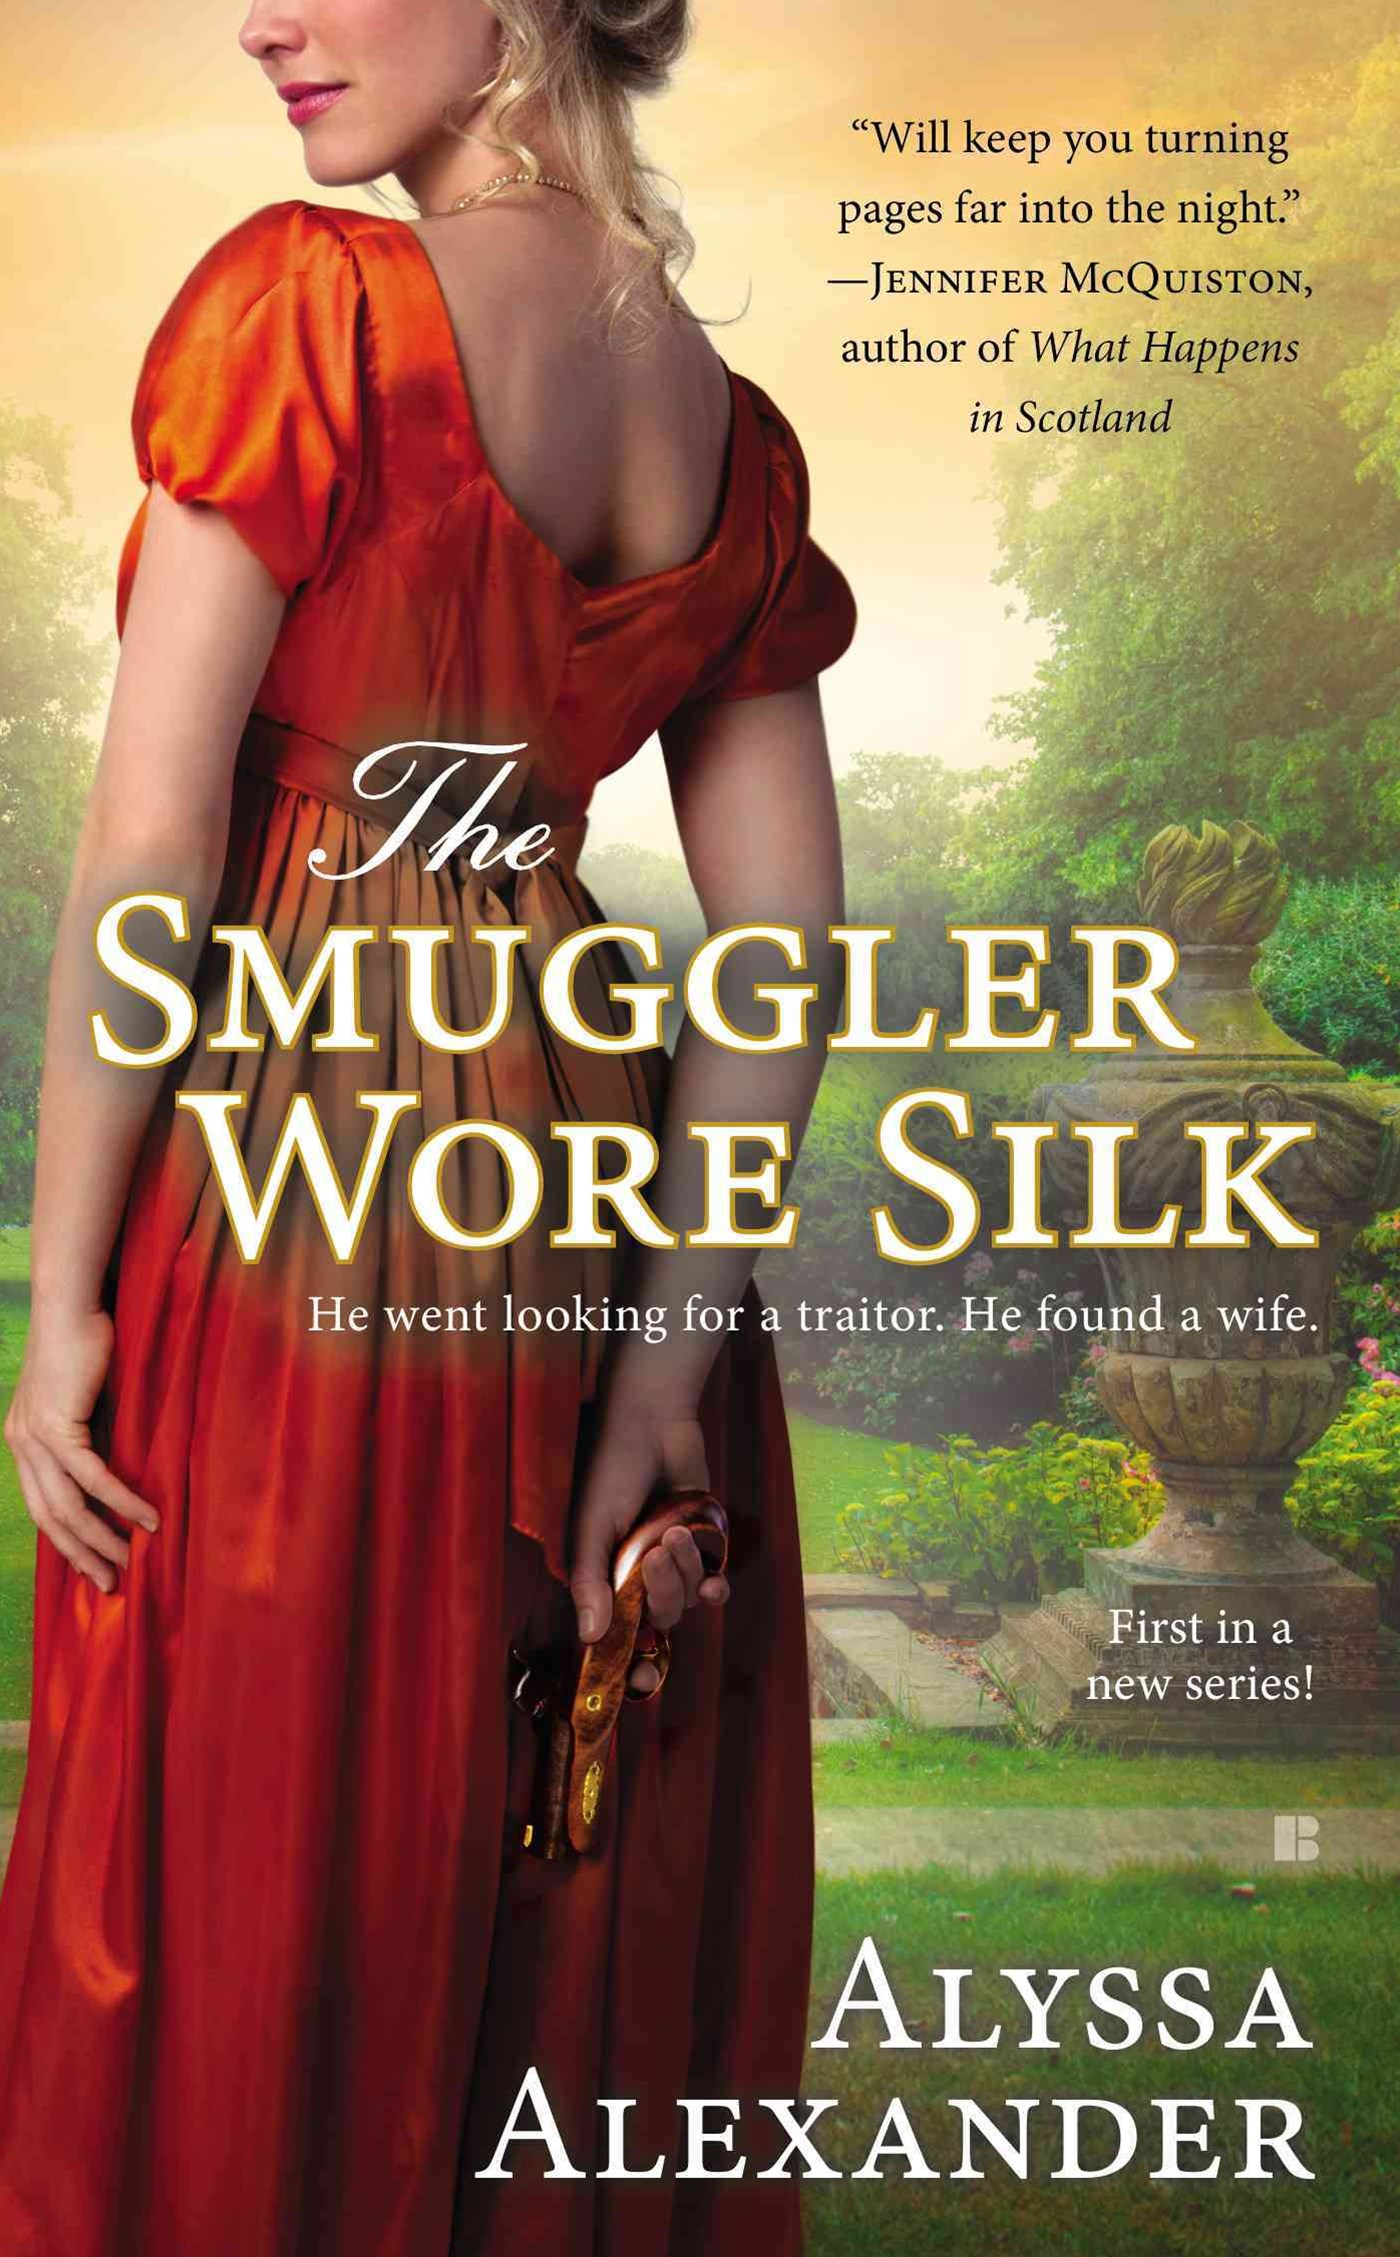 The Smuggler Wore Silk: A Spy In The Ton (Book 1)